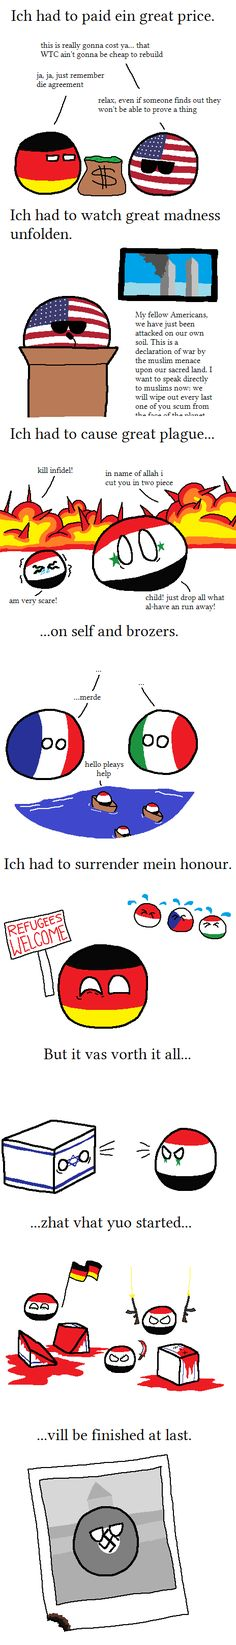 Finishing the Inside Job | Polandballs Countryballs